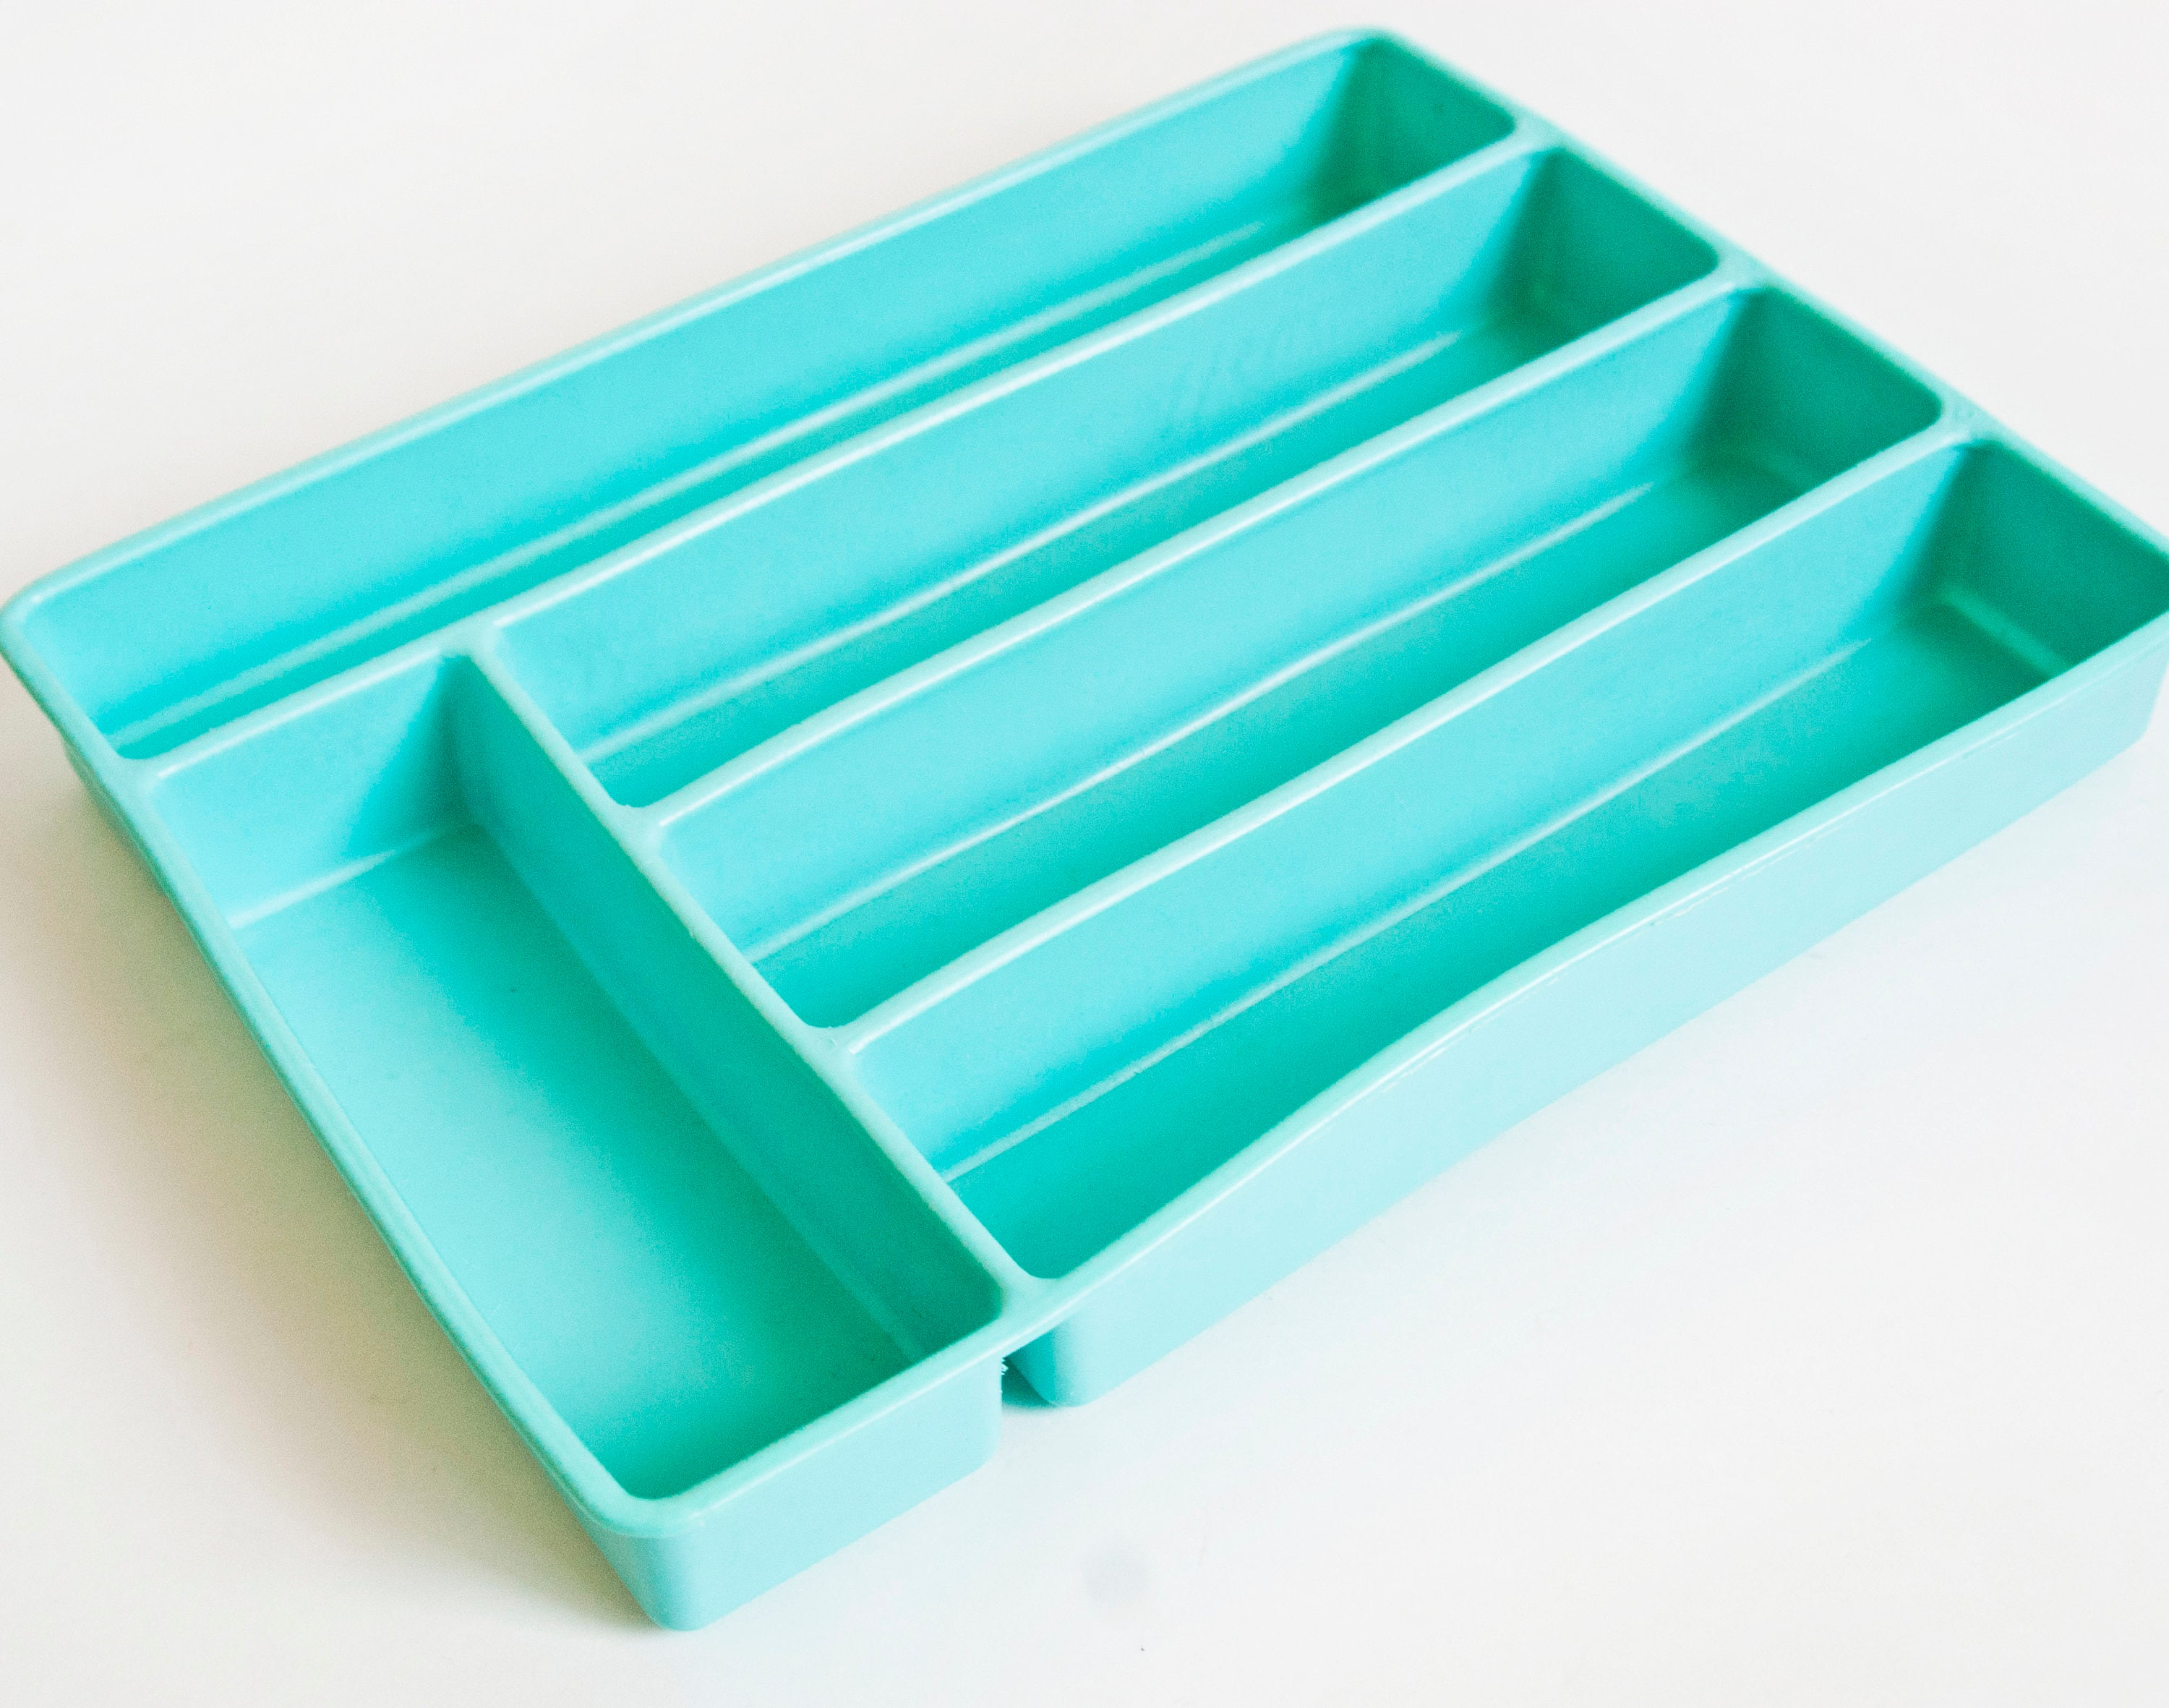 Vintage Turquoise Cutlery Tray 1950s 60s Silverware Organizer